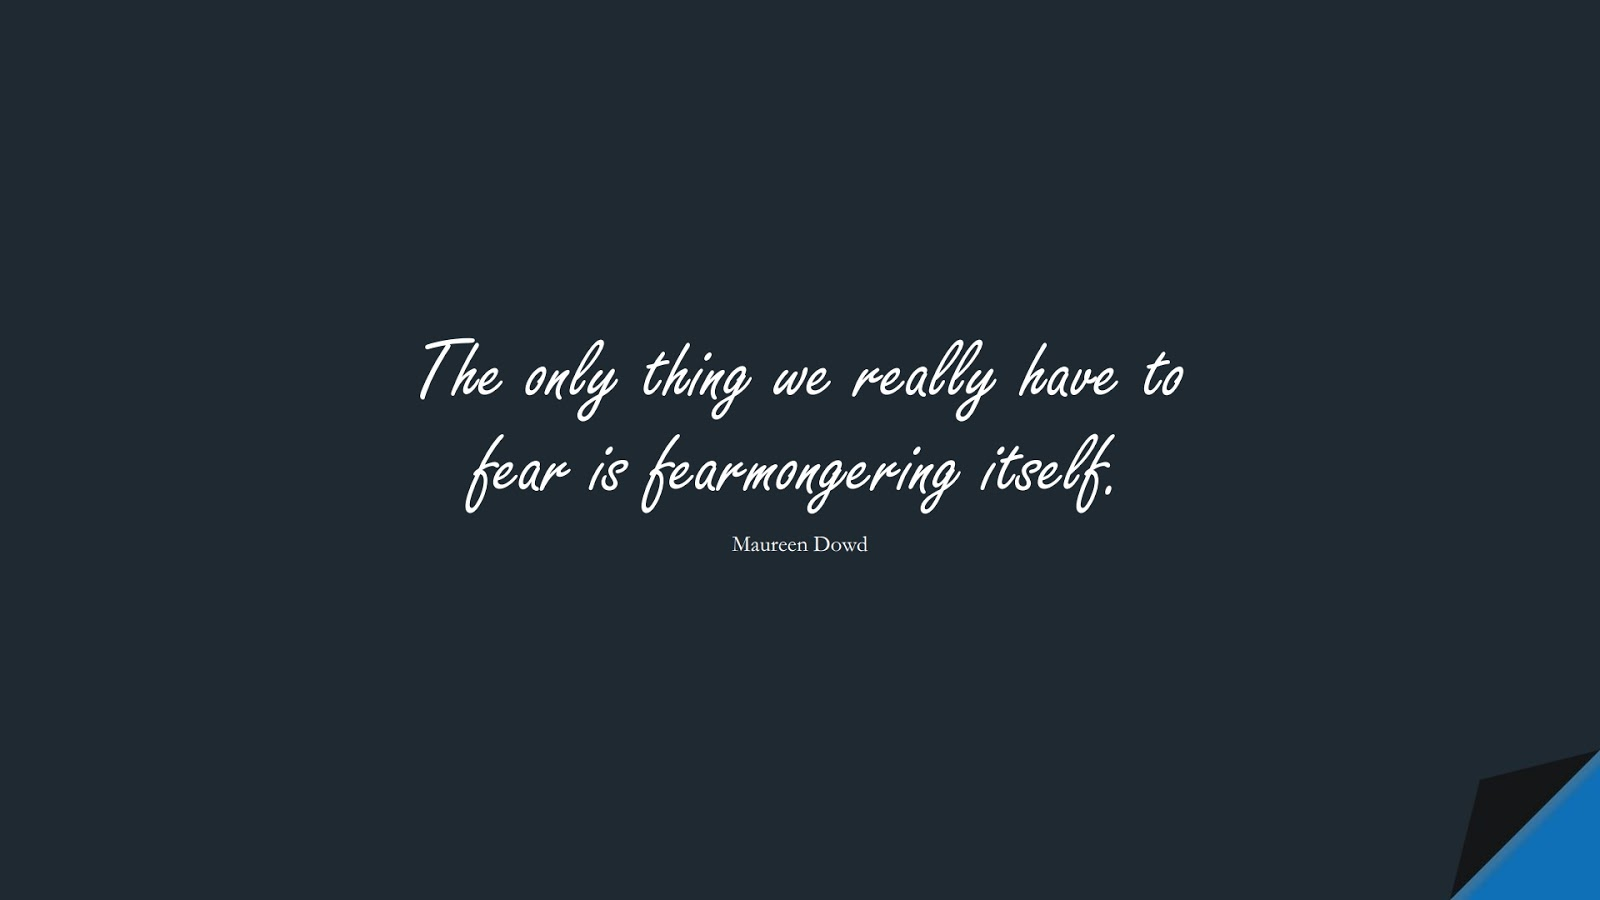 The only thing we really have to fear is fearmongering itself. (Maureen Dowd);  #FearQuotes